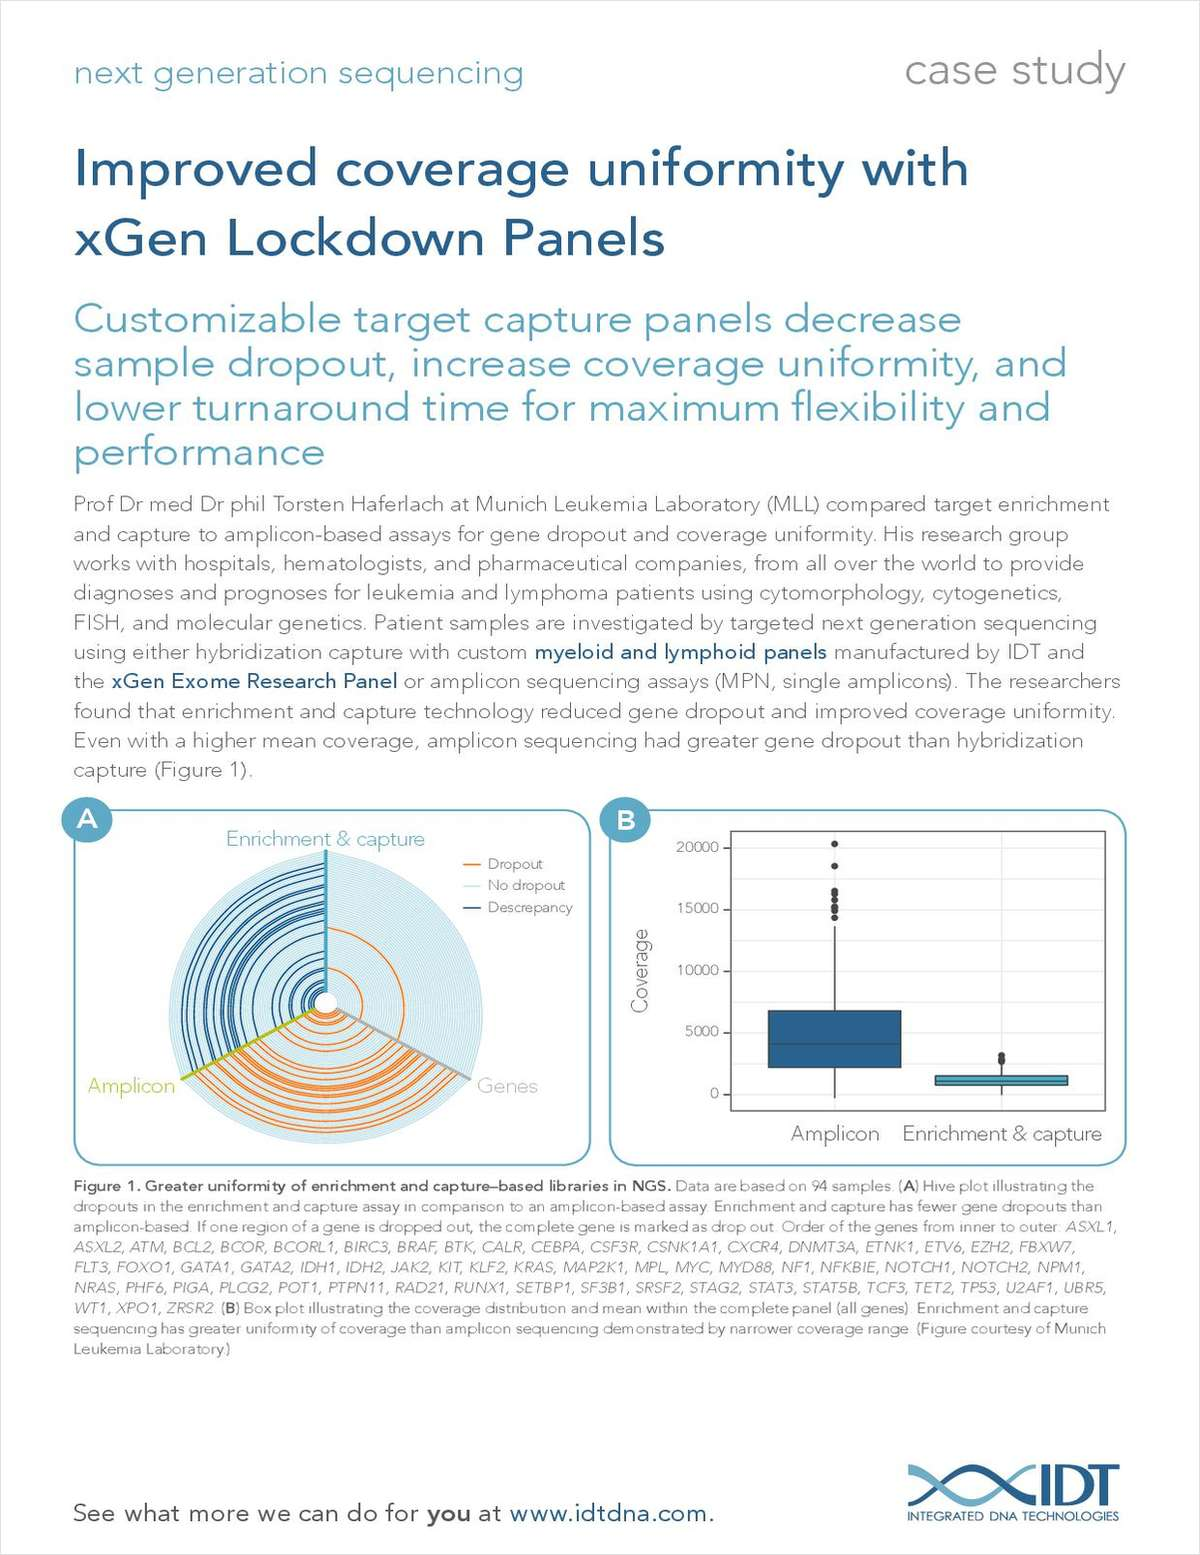 Improved Coverage Uniformity with xGen Lockdown Panels